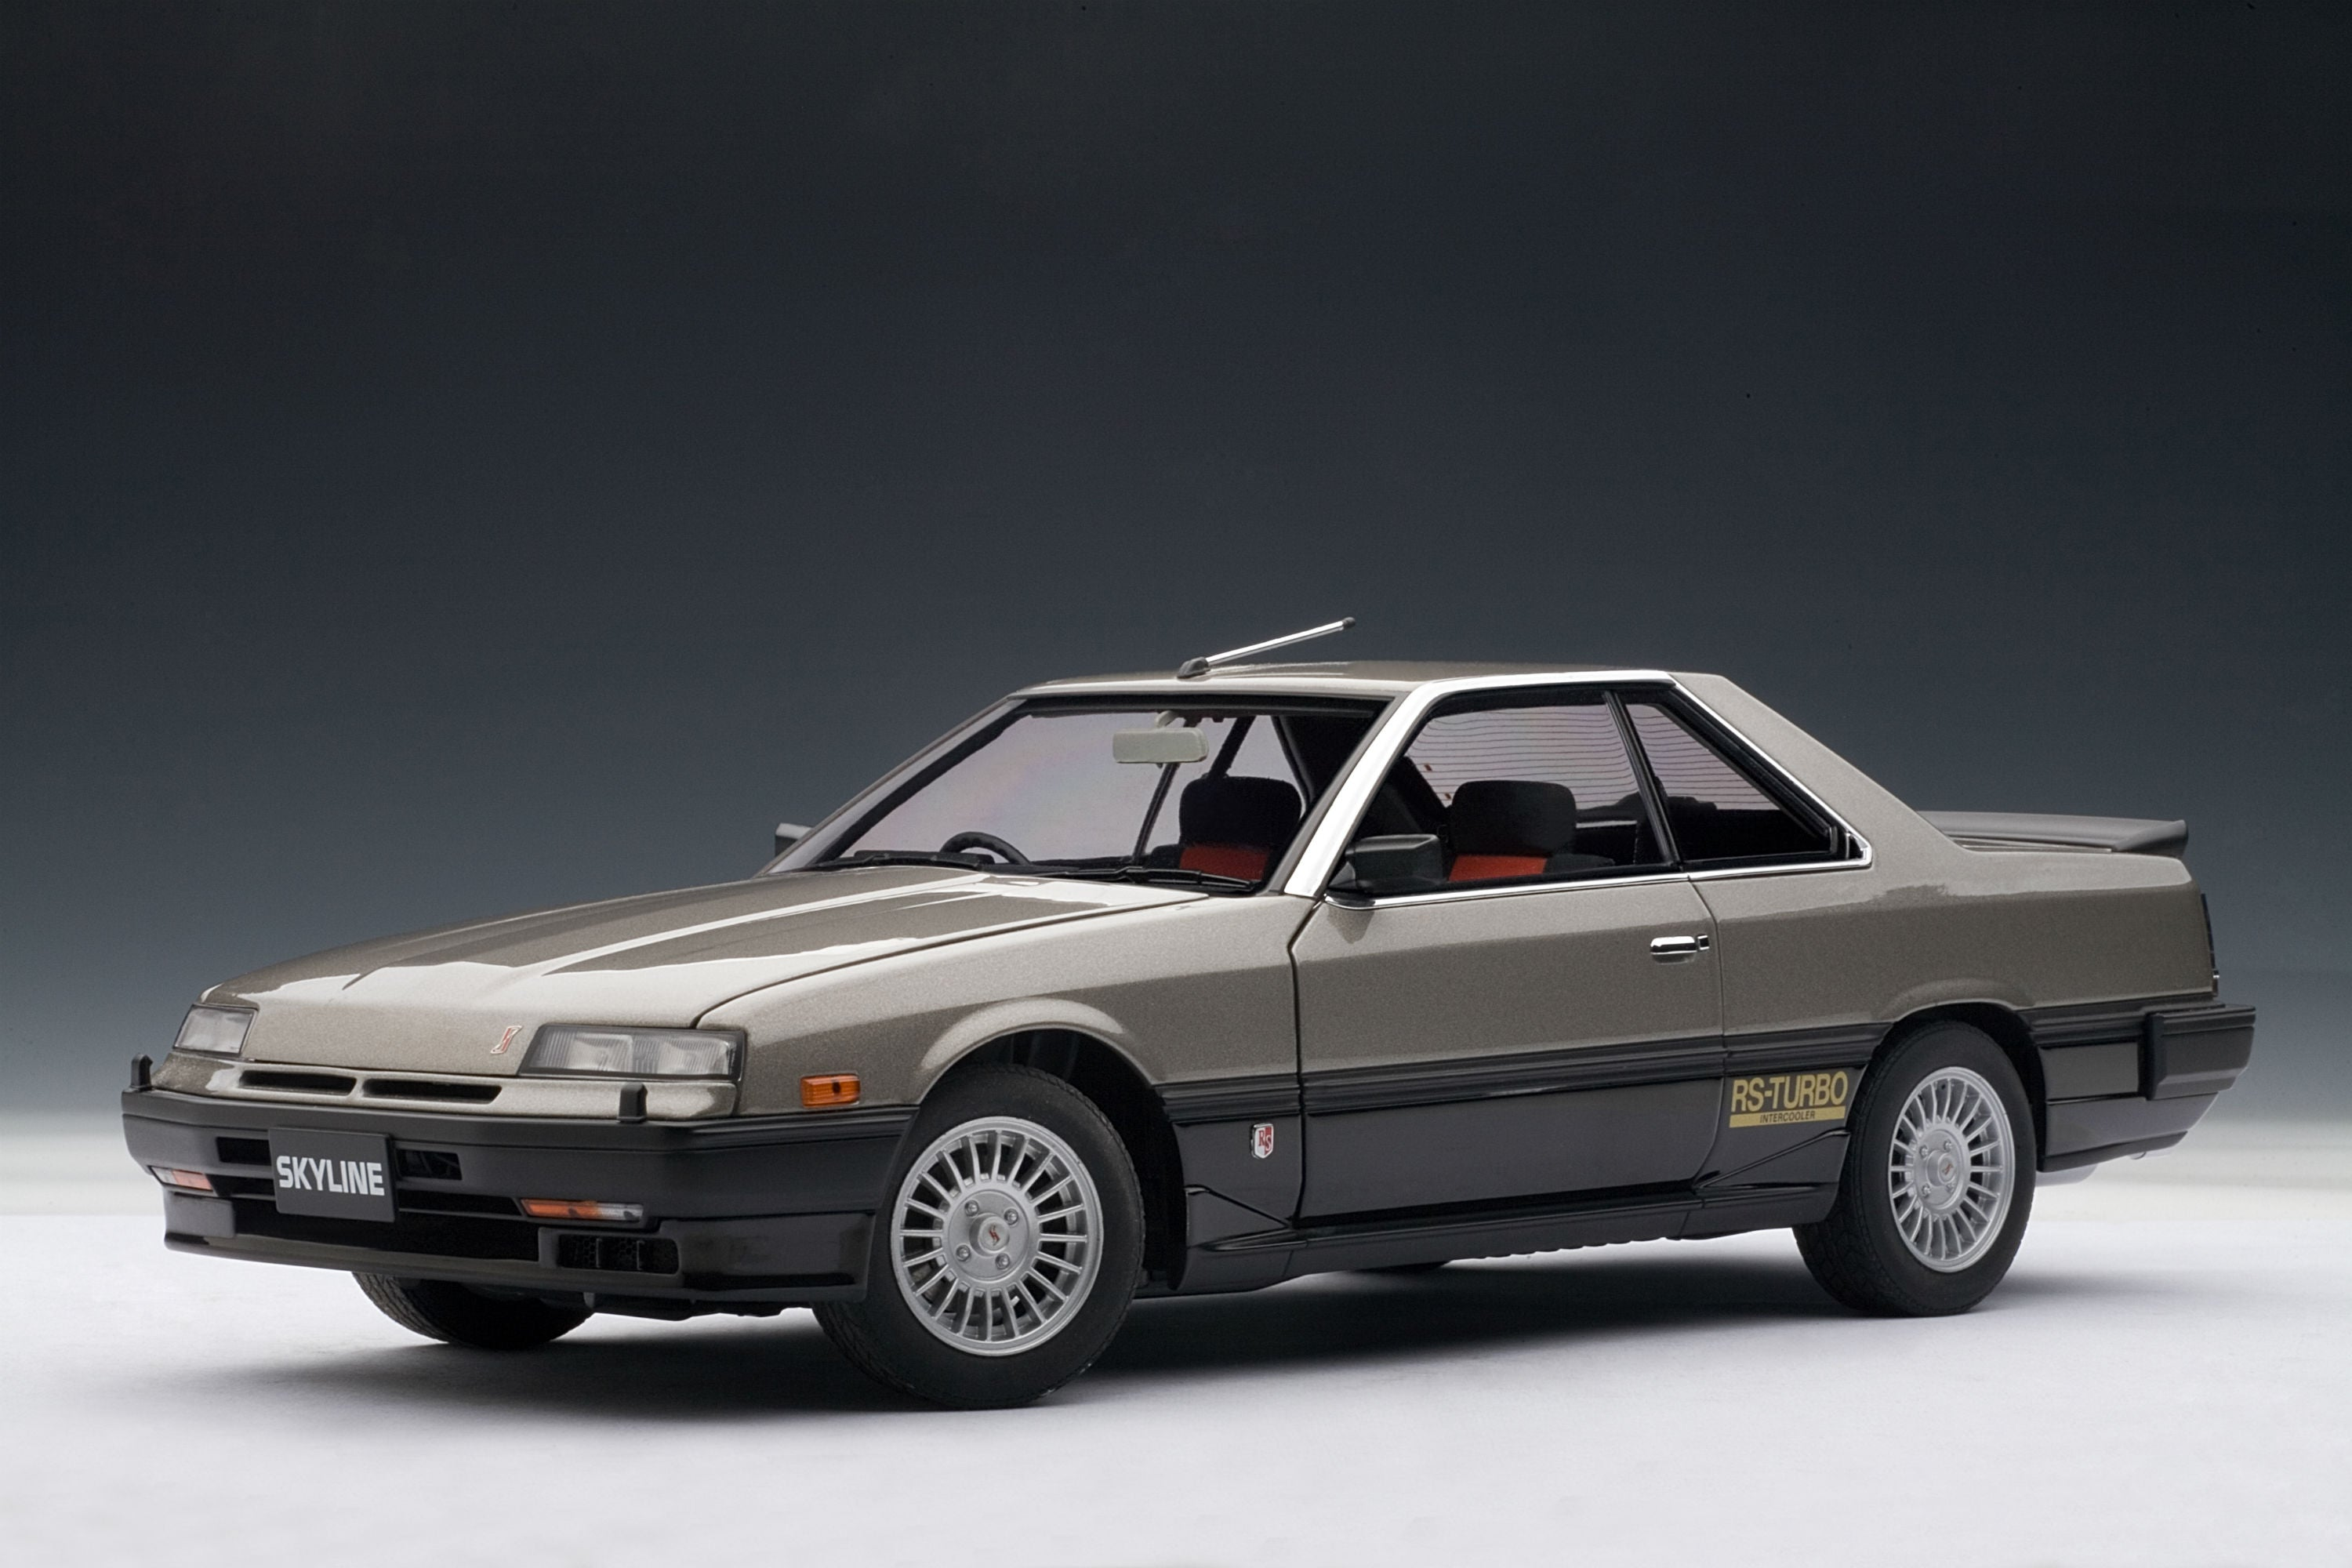 Nissan Skyline GT-X Turbo (DR30, 1984) | 1:18 Scale Diecast Model Car by AUTOart | Front Quarter